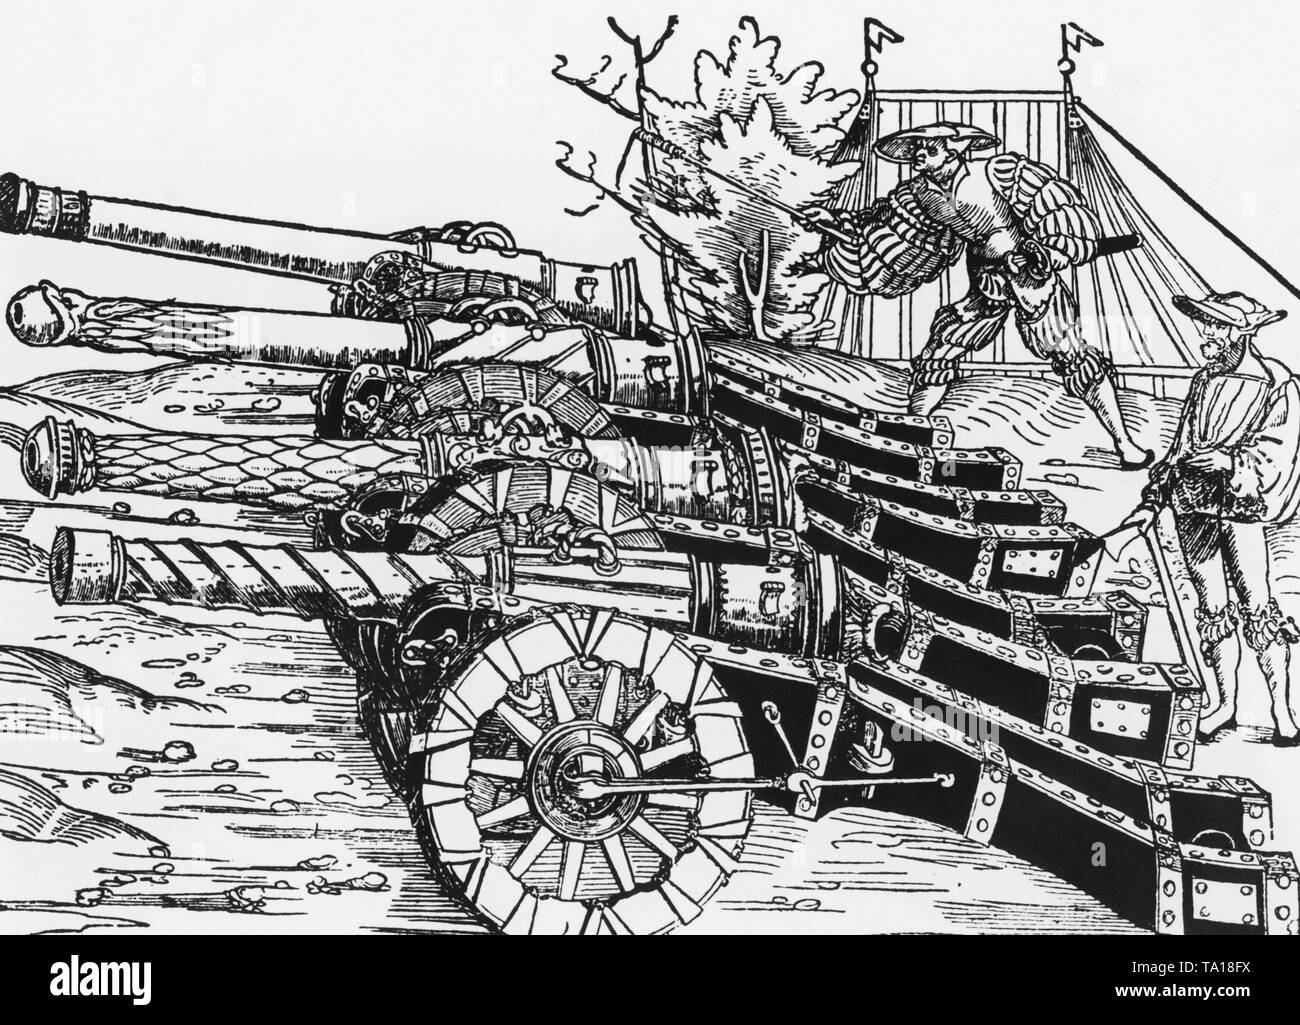 Woodcut from the 16th century, showing 4 molded and decorated cannons. - Stock Image